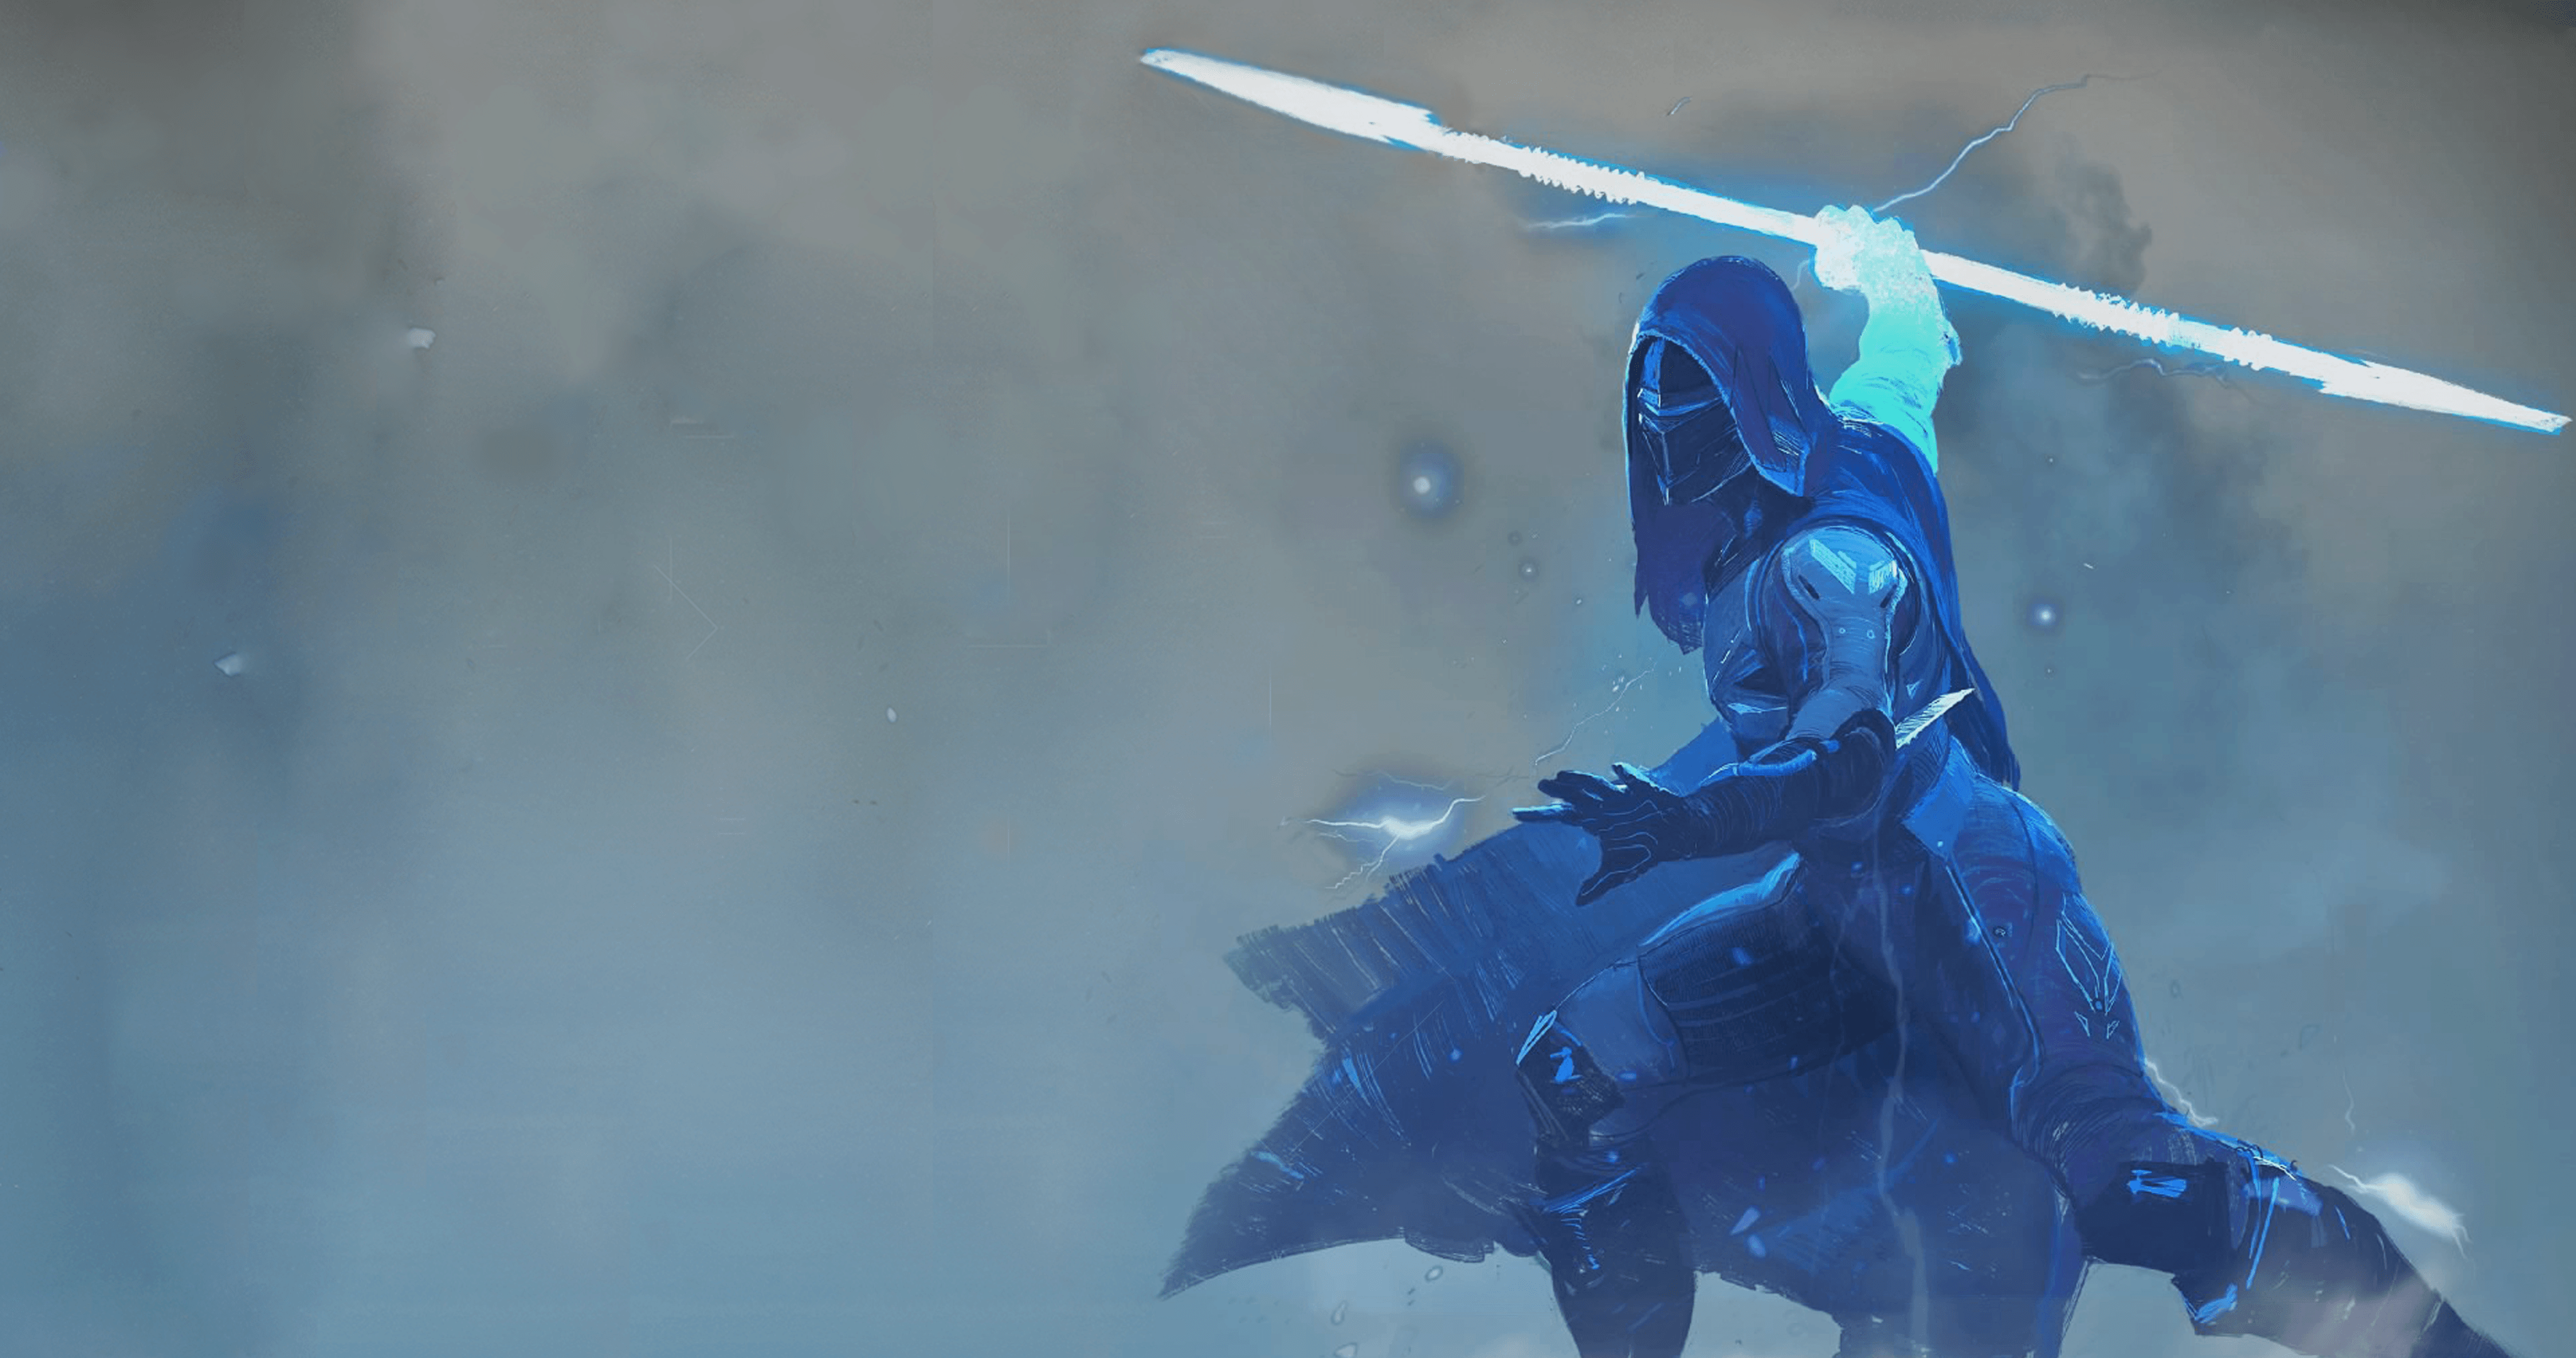 Destiny 2 Desktop Wallpaper: Warlock Stormcaller Destiny 4K Wallpapers